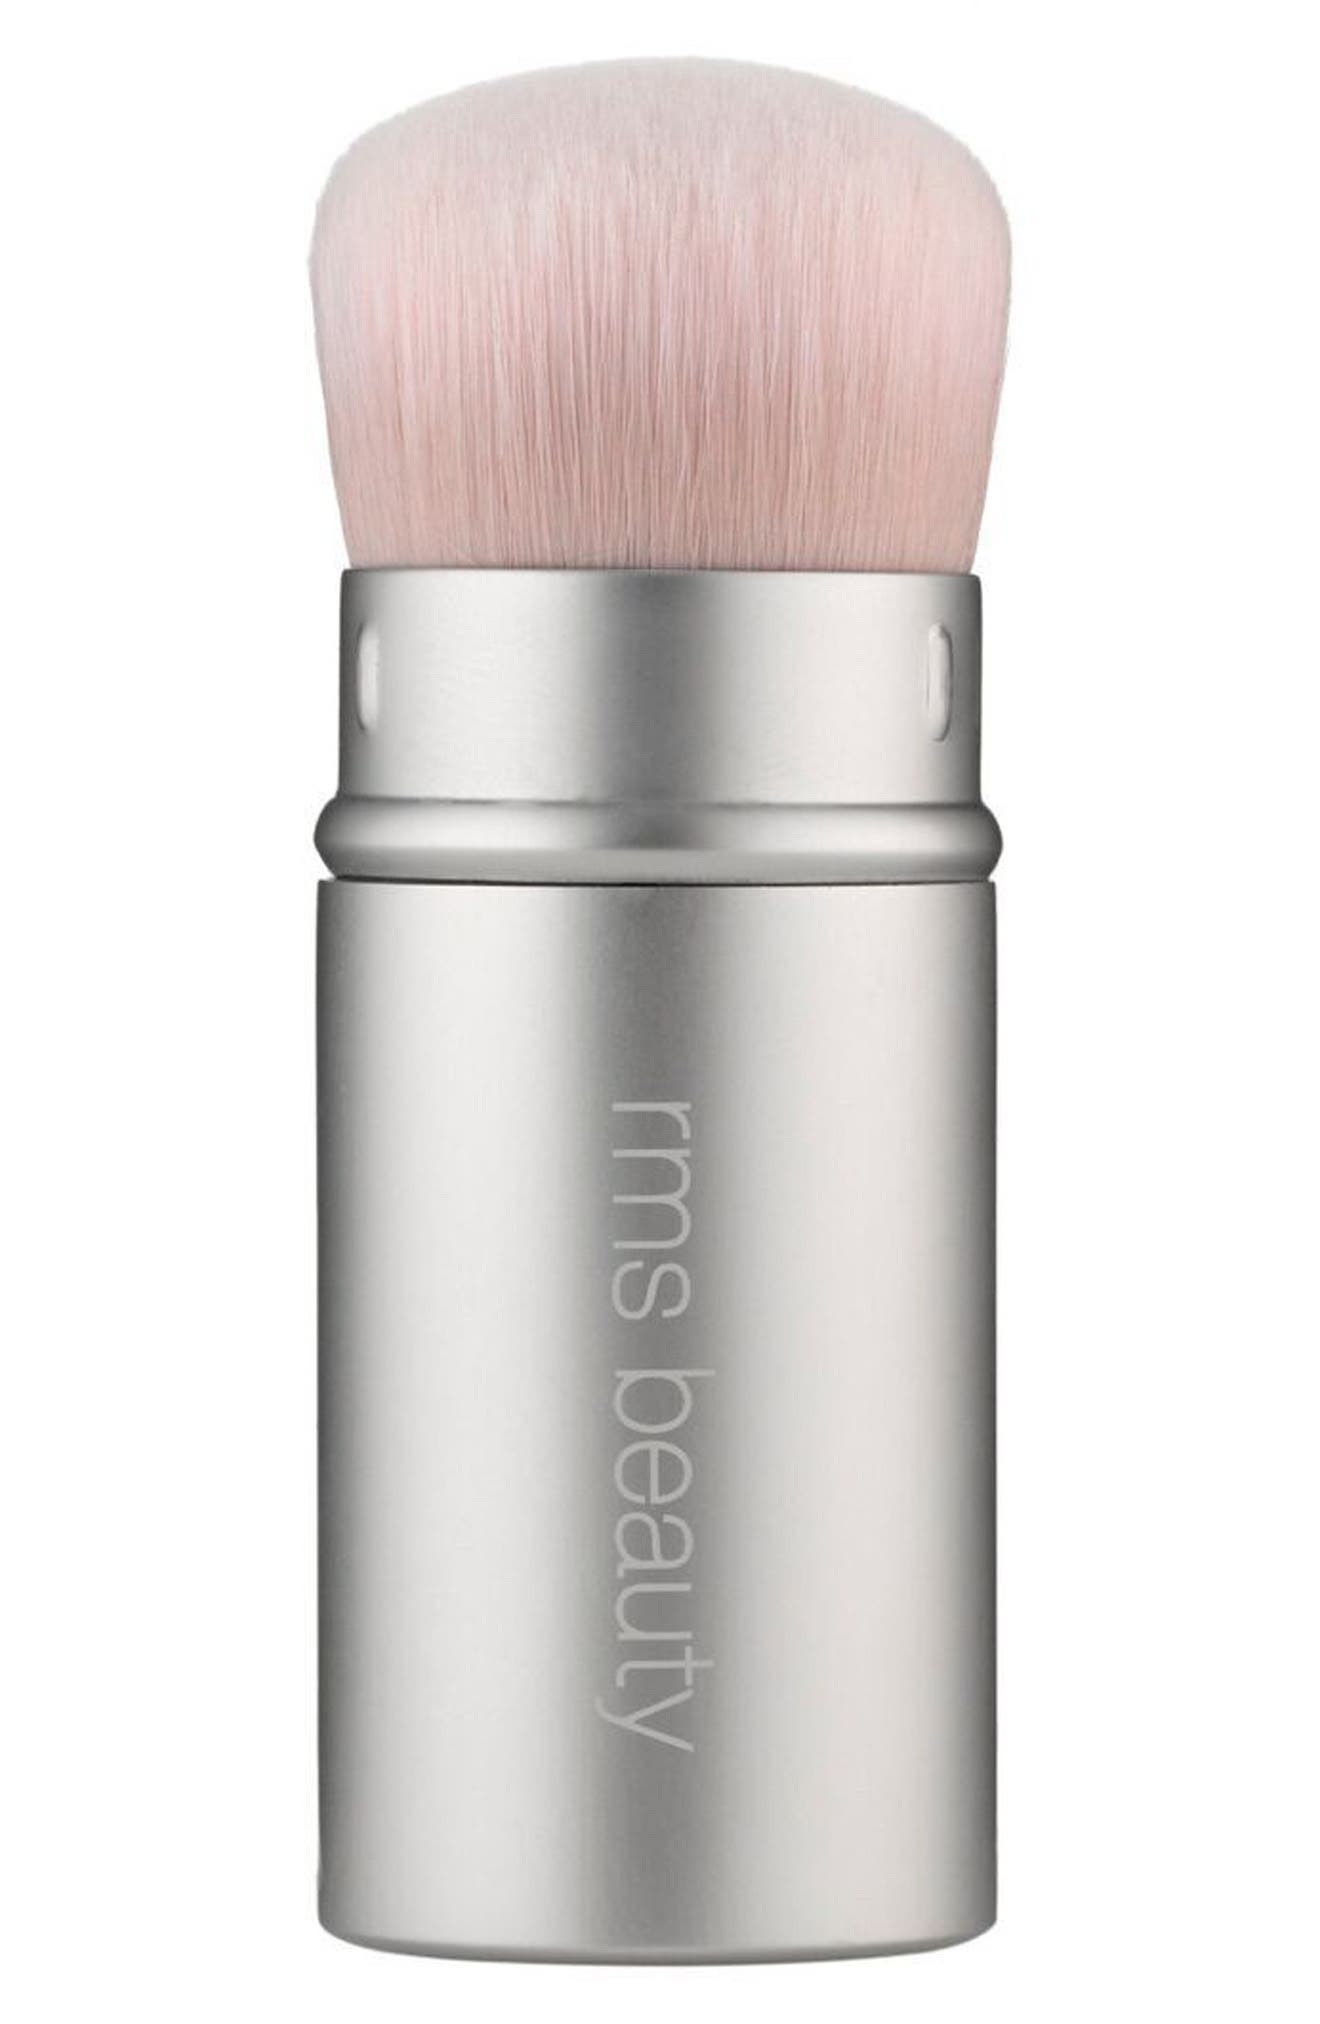 RMS Beauty Kabuki Polisher Retractable Brush